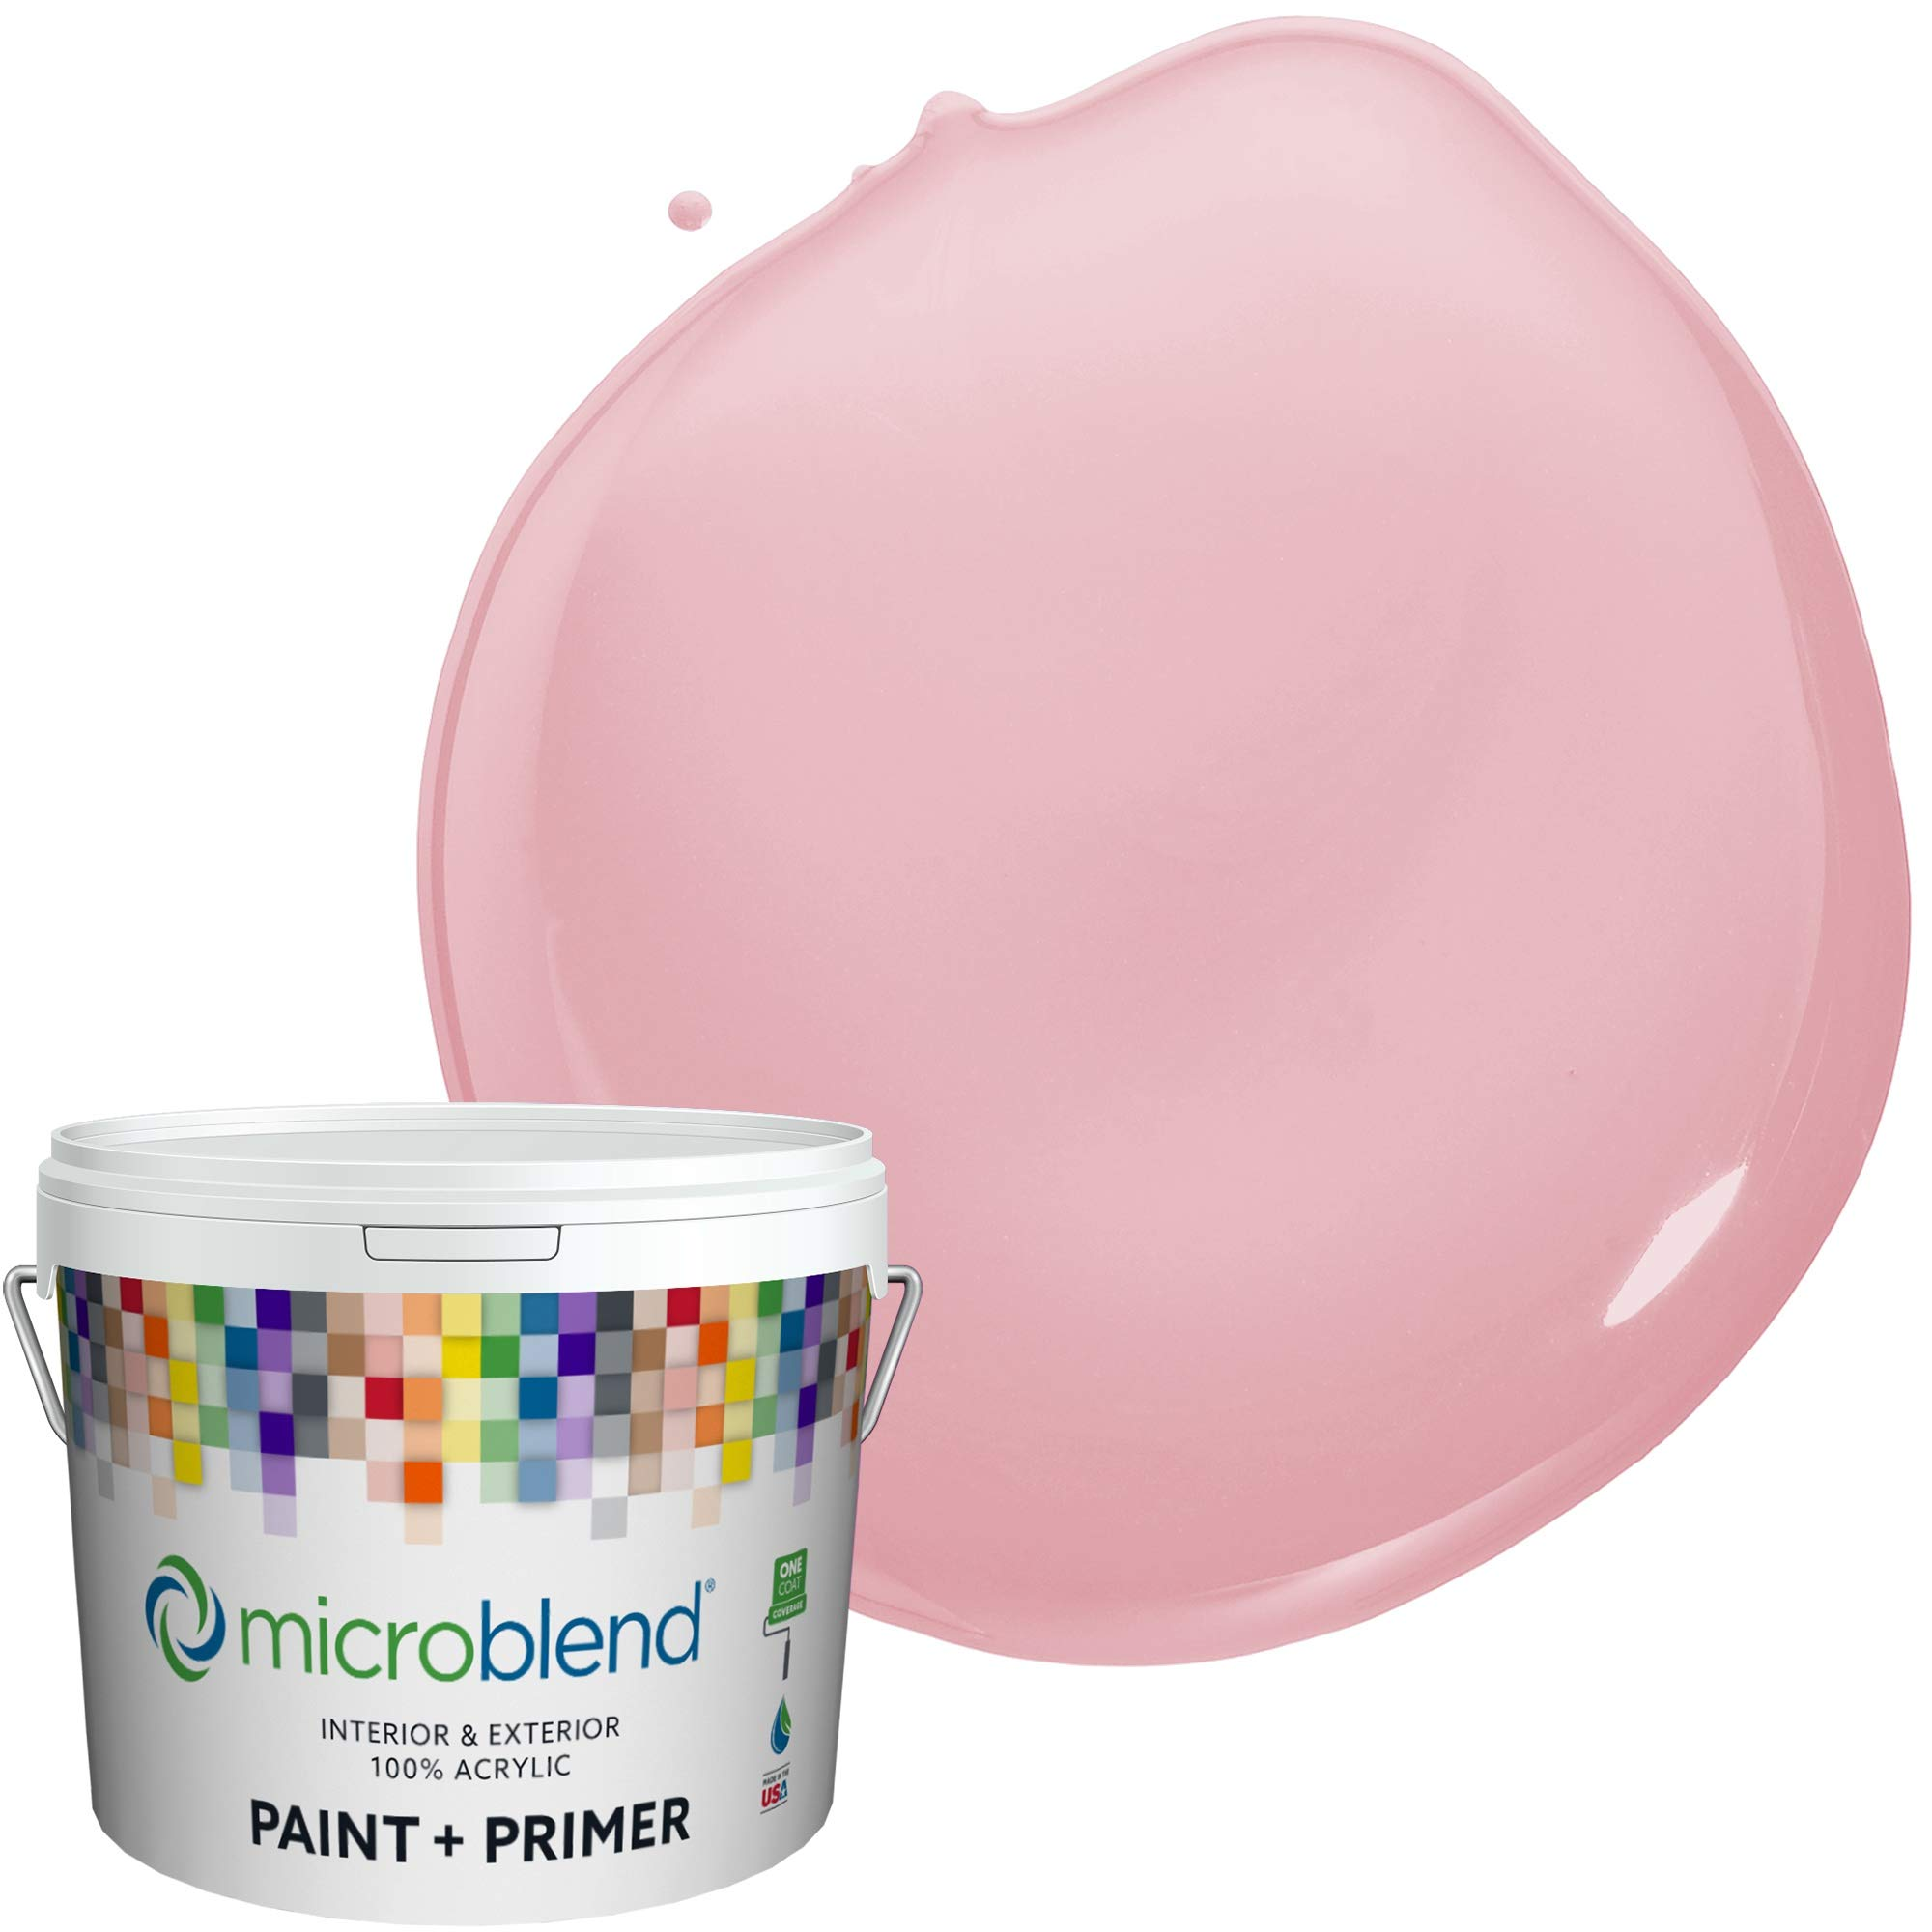 MicroBlend Interior Paint + Primer, Think Pink, Eggshell Sheen, 1 Gallon, Custom Made, Premium Quality One Coat Hide & Washable Paint (73220-2-M1188B3)